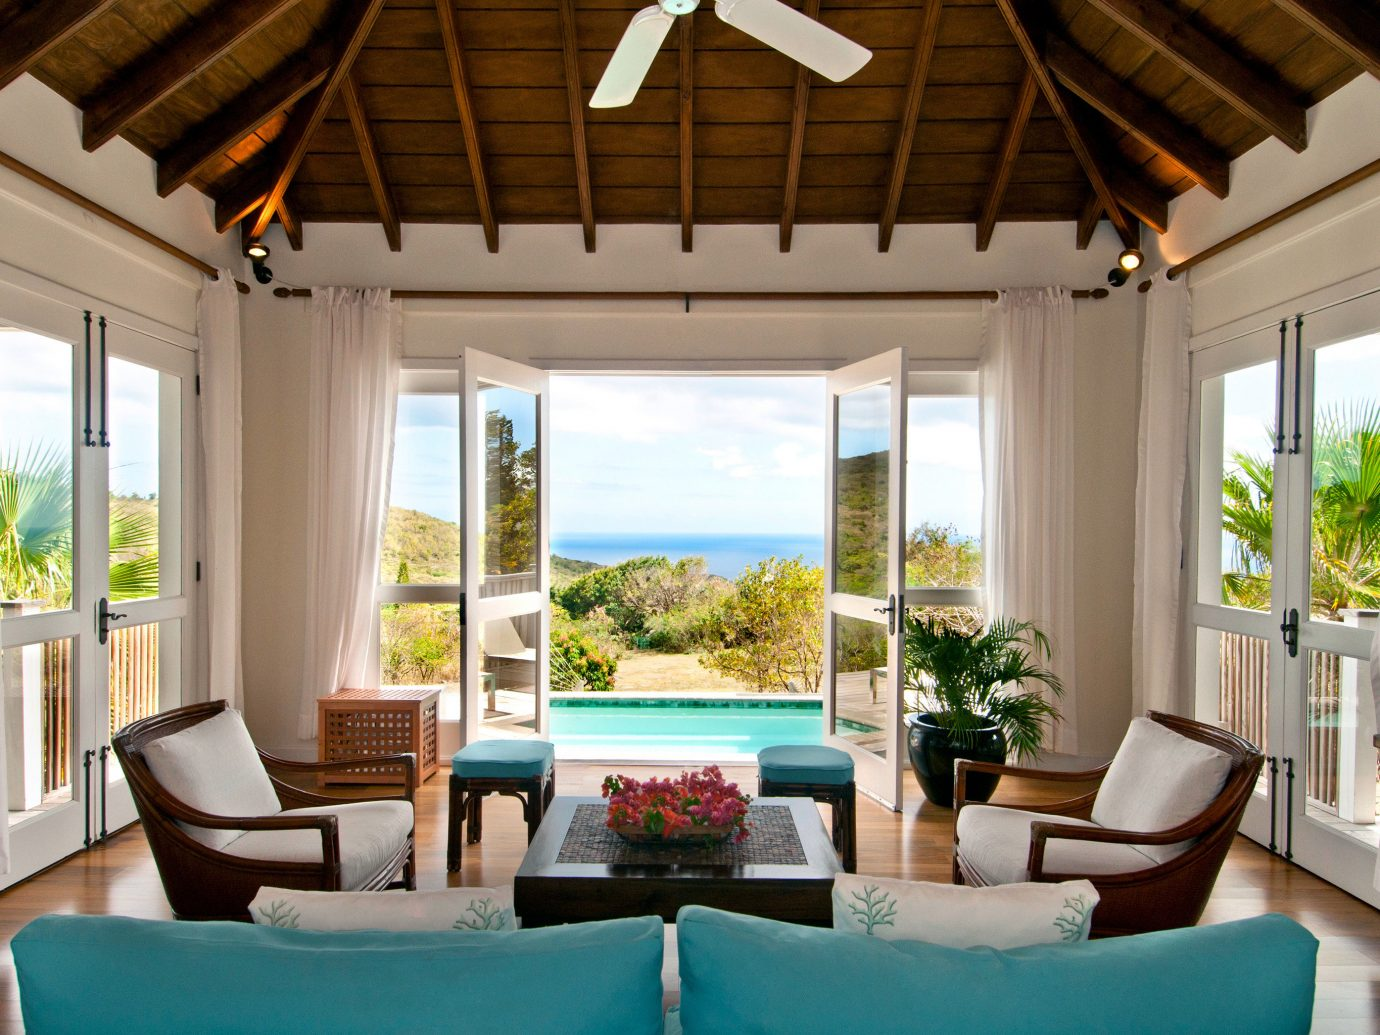 Island Living Luxury Pool Scenic views Trip Ideas indoor window floor room ceiling chair property furniture living room estate Resort home interior design Villa real estate cottage farmhouse porch decorated area several arranged